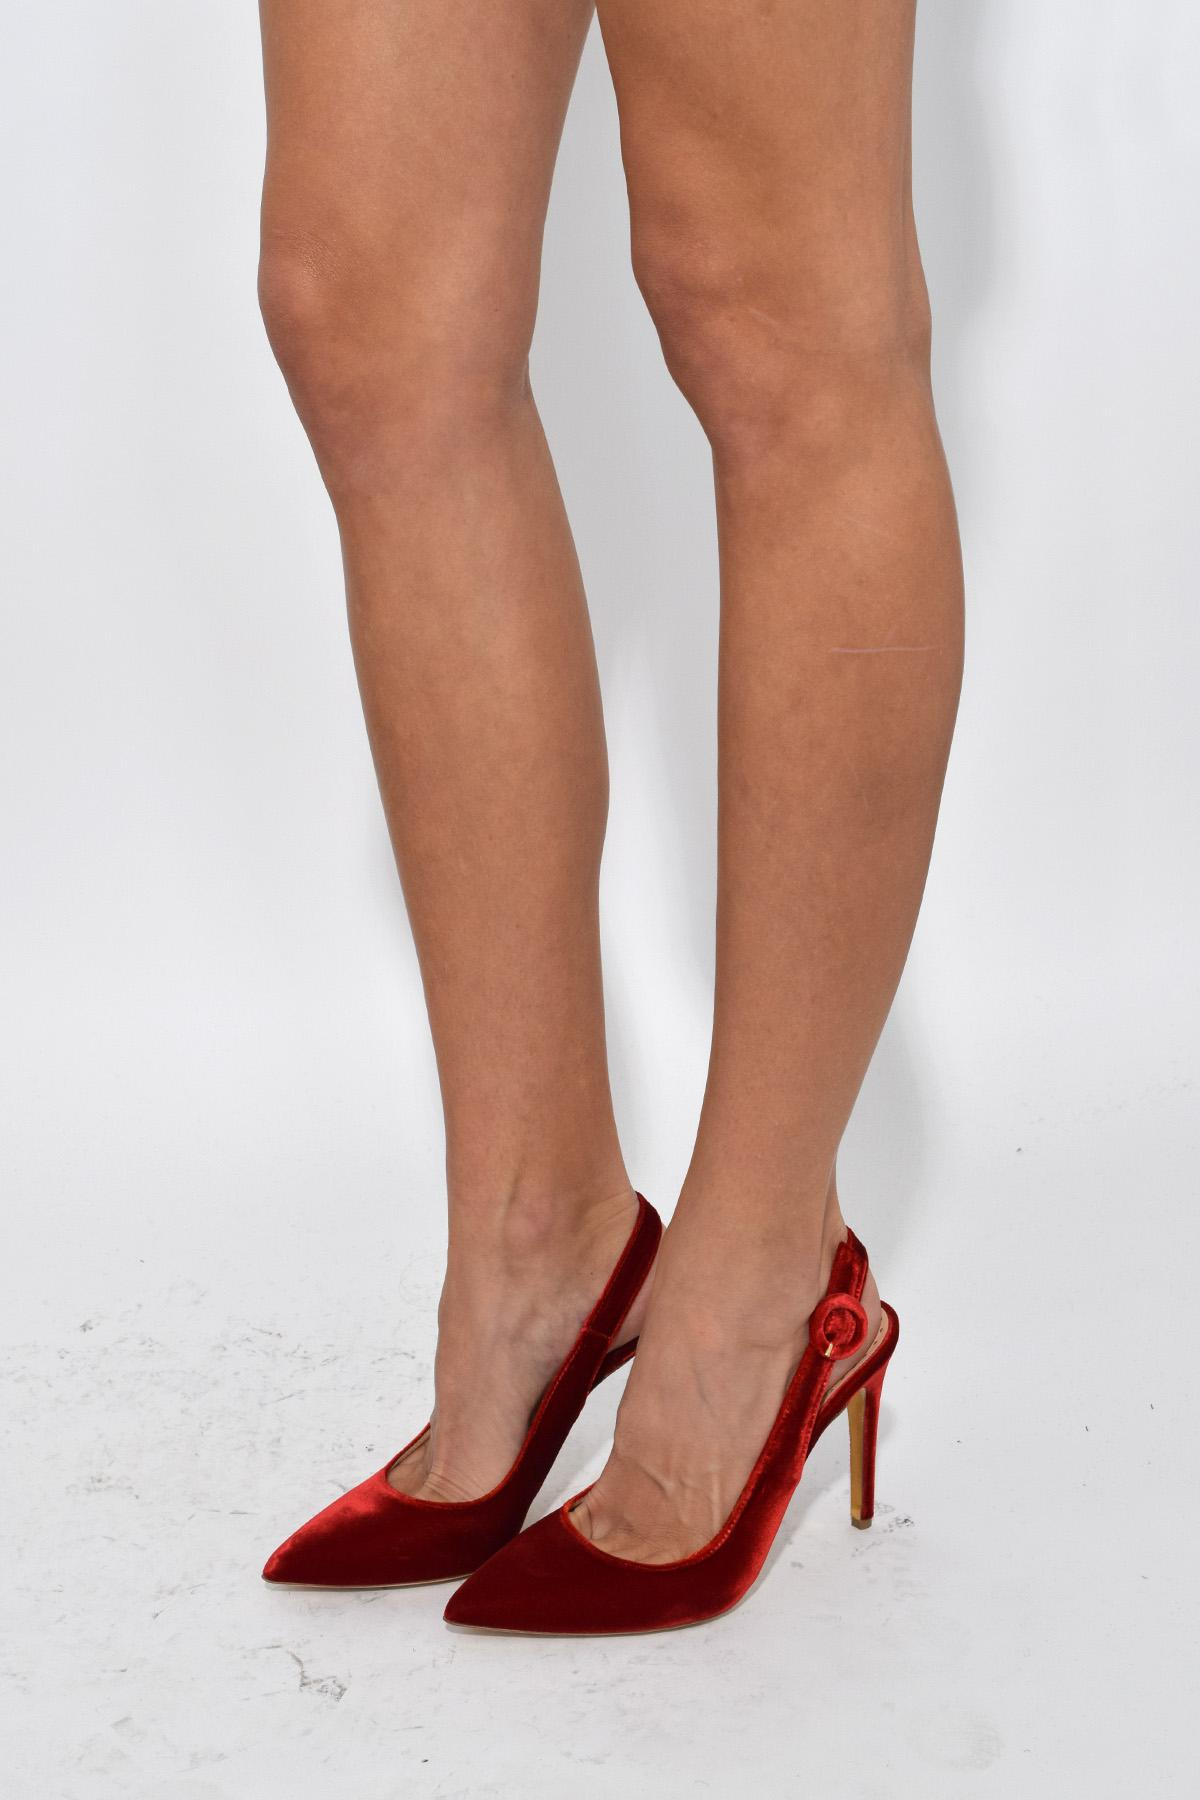 outlet pre order outlet professional Rupert Sanderson Diana pumps buy cheap from china SeMrI